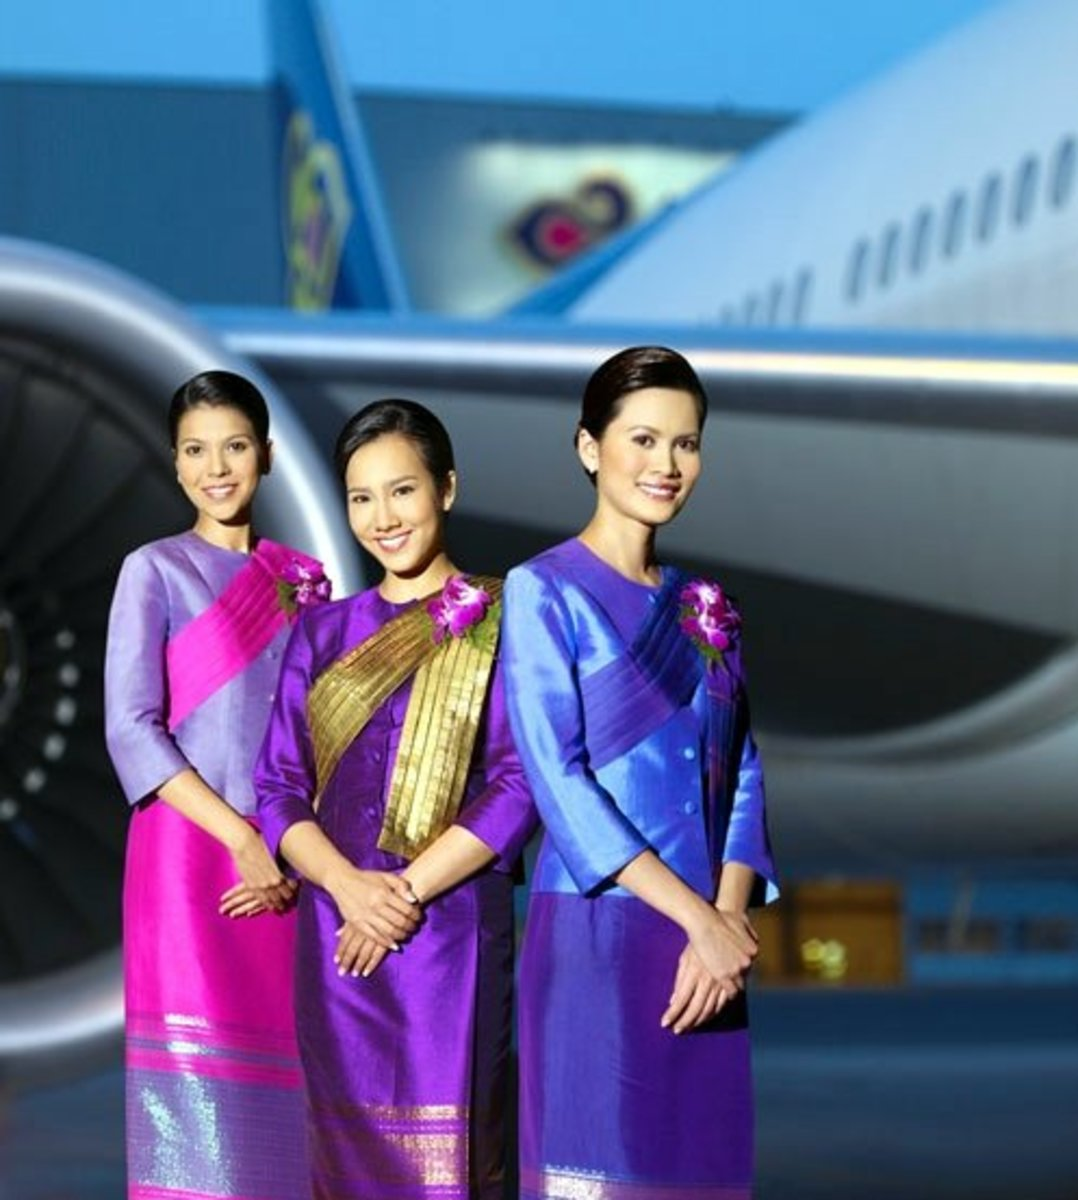 Thai Airline flight attendants in their Thai traditional uniform worn when in the plane